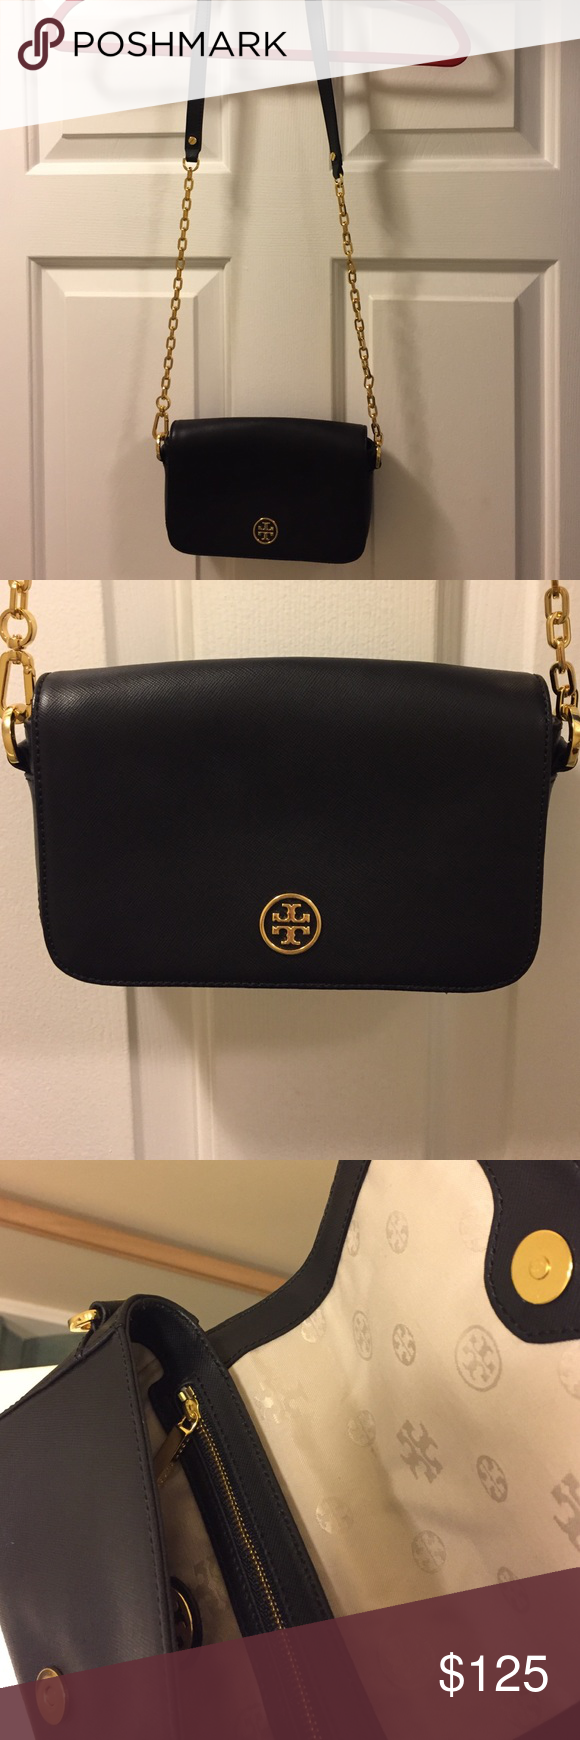 Tory Burch Shoulder Bag This bag has barely been used. It is in excellent condition. Still has original dust bag. Black shoulder bag with gold chain strap. Tory Burch Bags Shoulder Bags